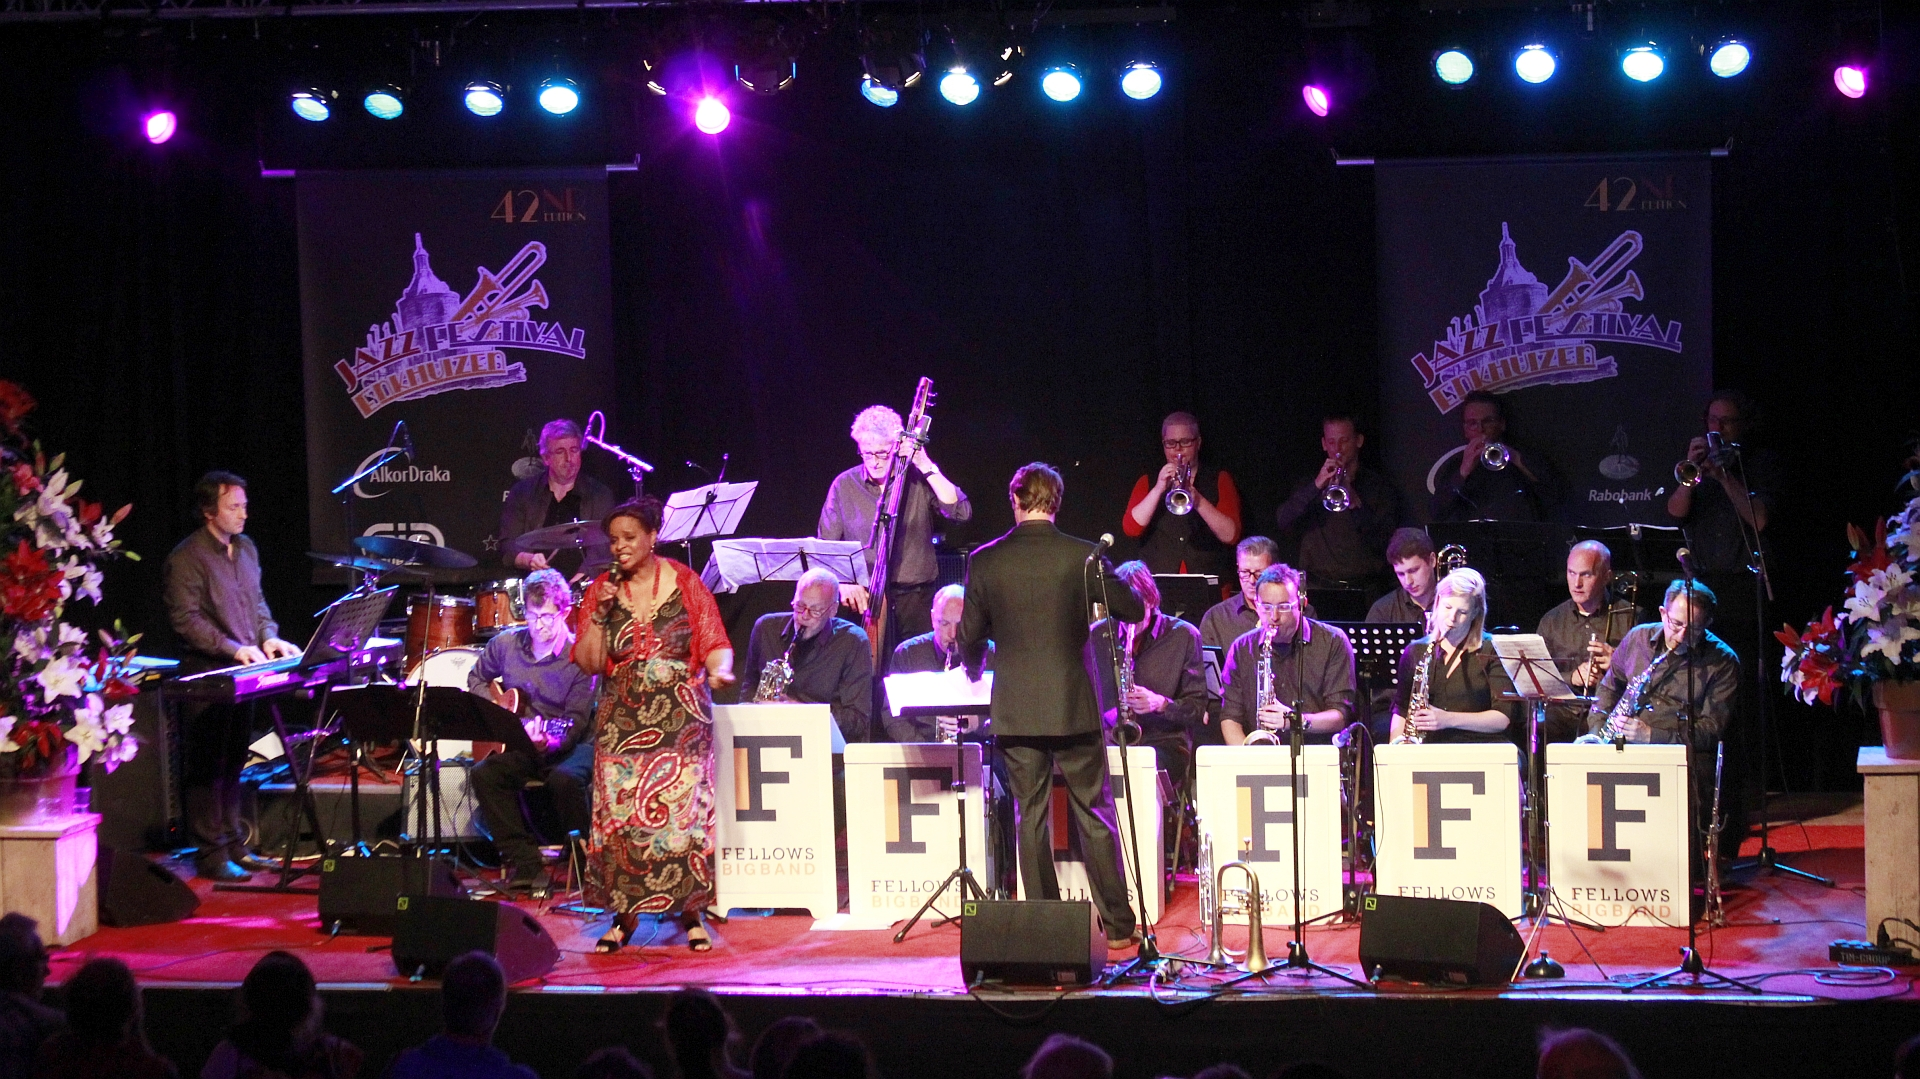 16 Fellows Big Band